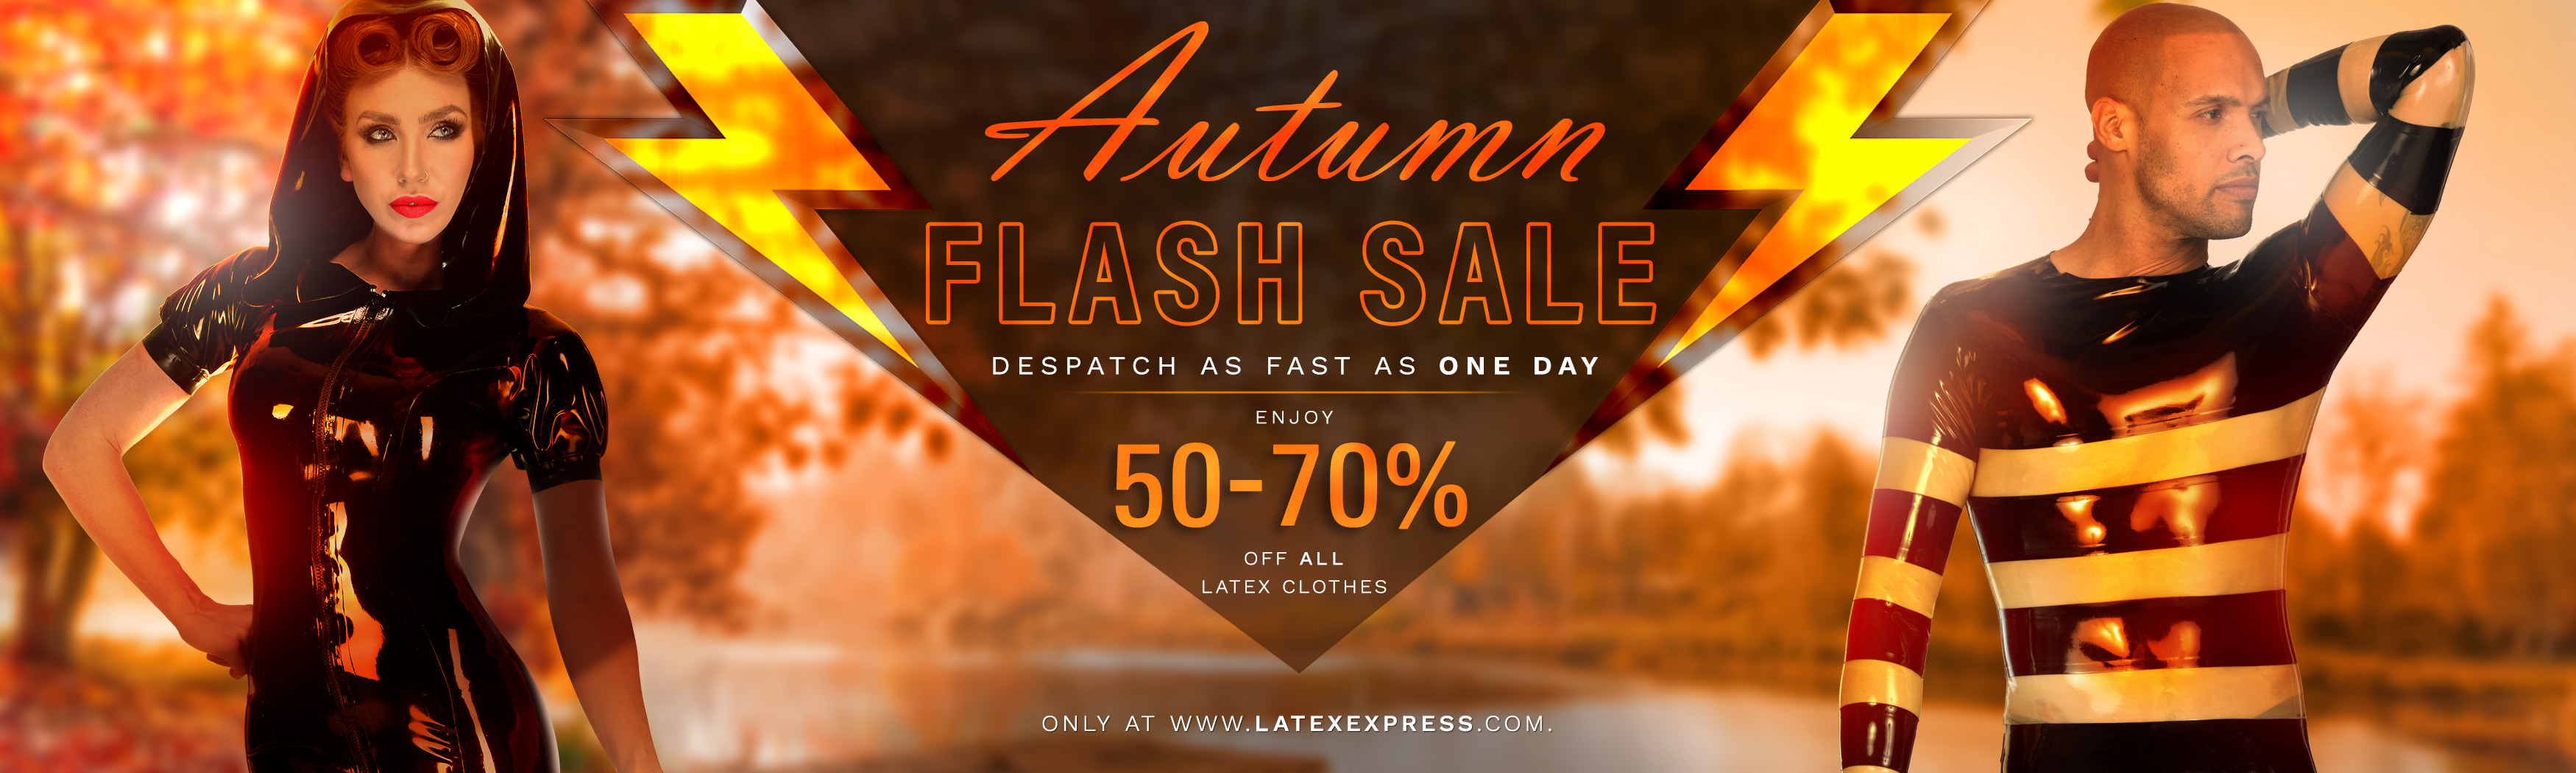 LatexEXPRESS Autumn Flash Sale 2019